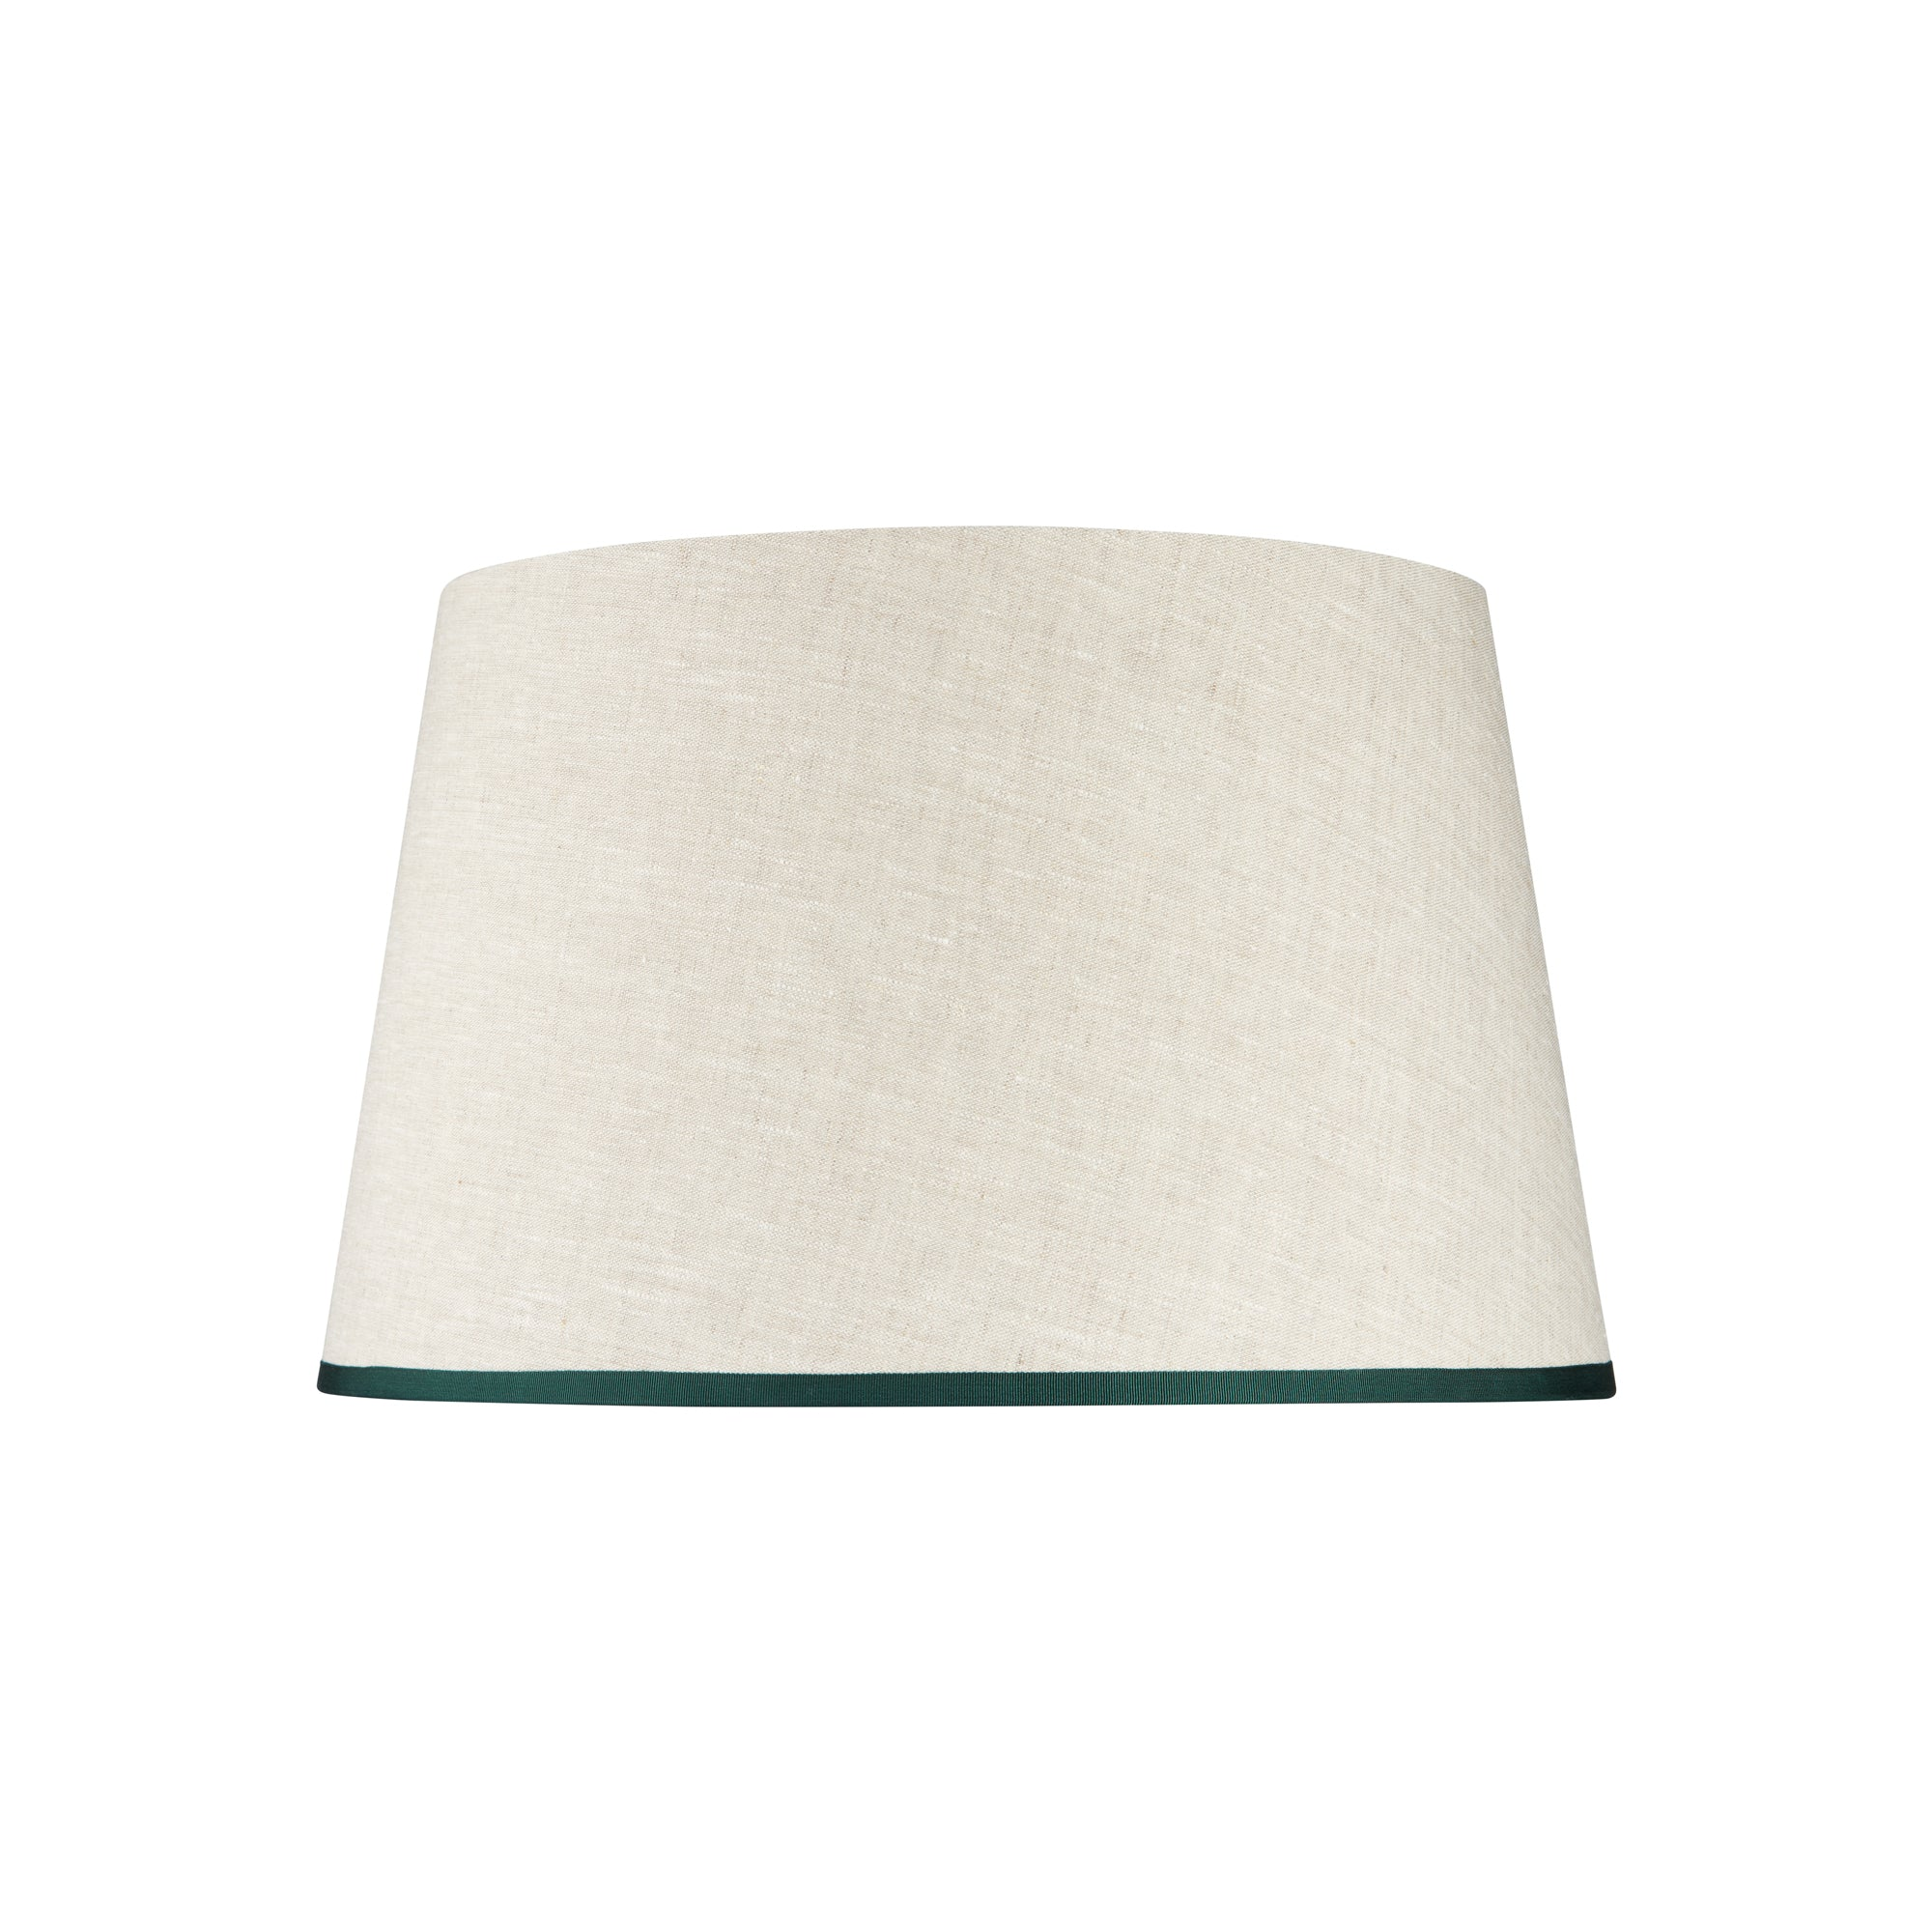 STRETCHED LINEN LAMPSHADE WITH RIBBED ARTICHOKE GREEN TRIM